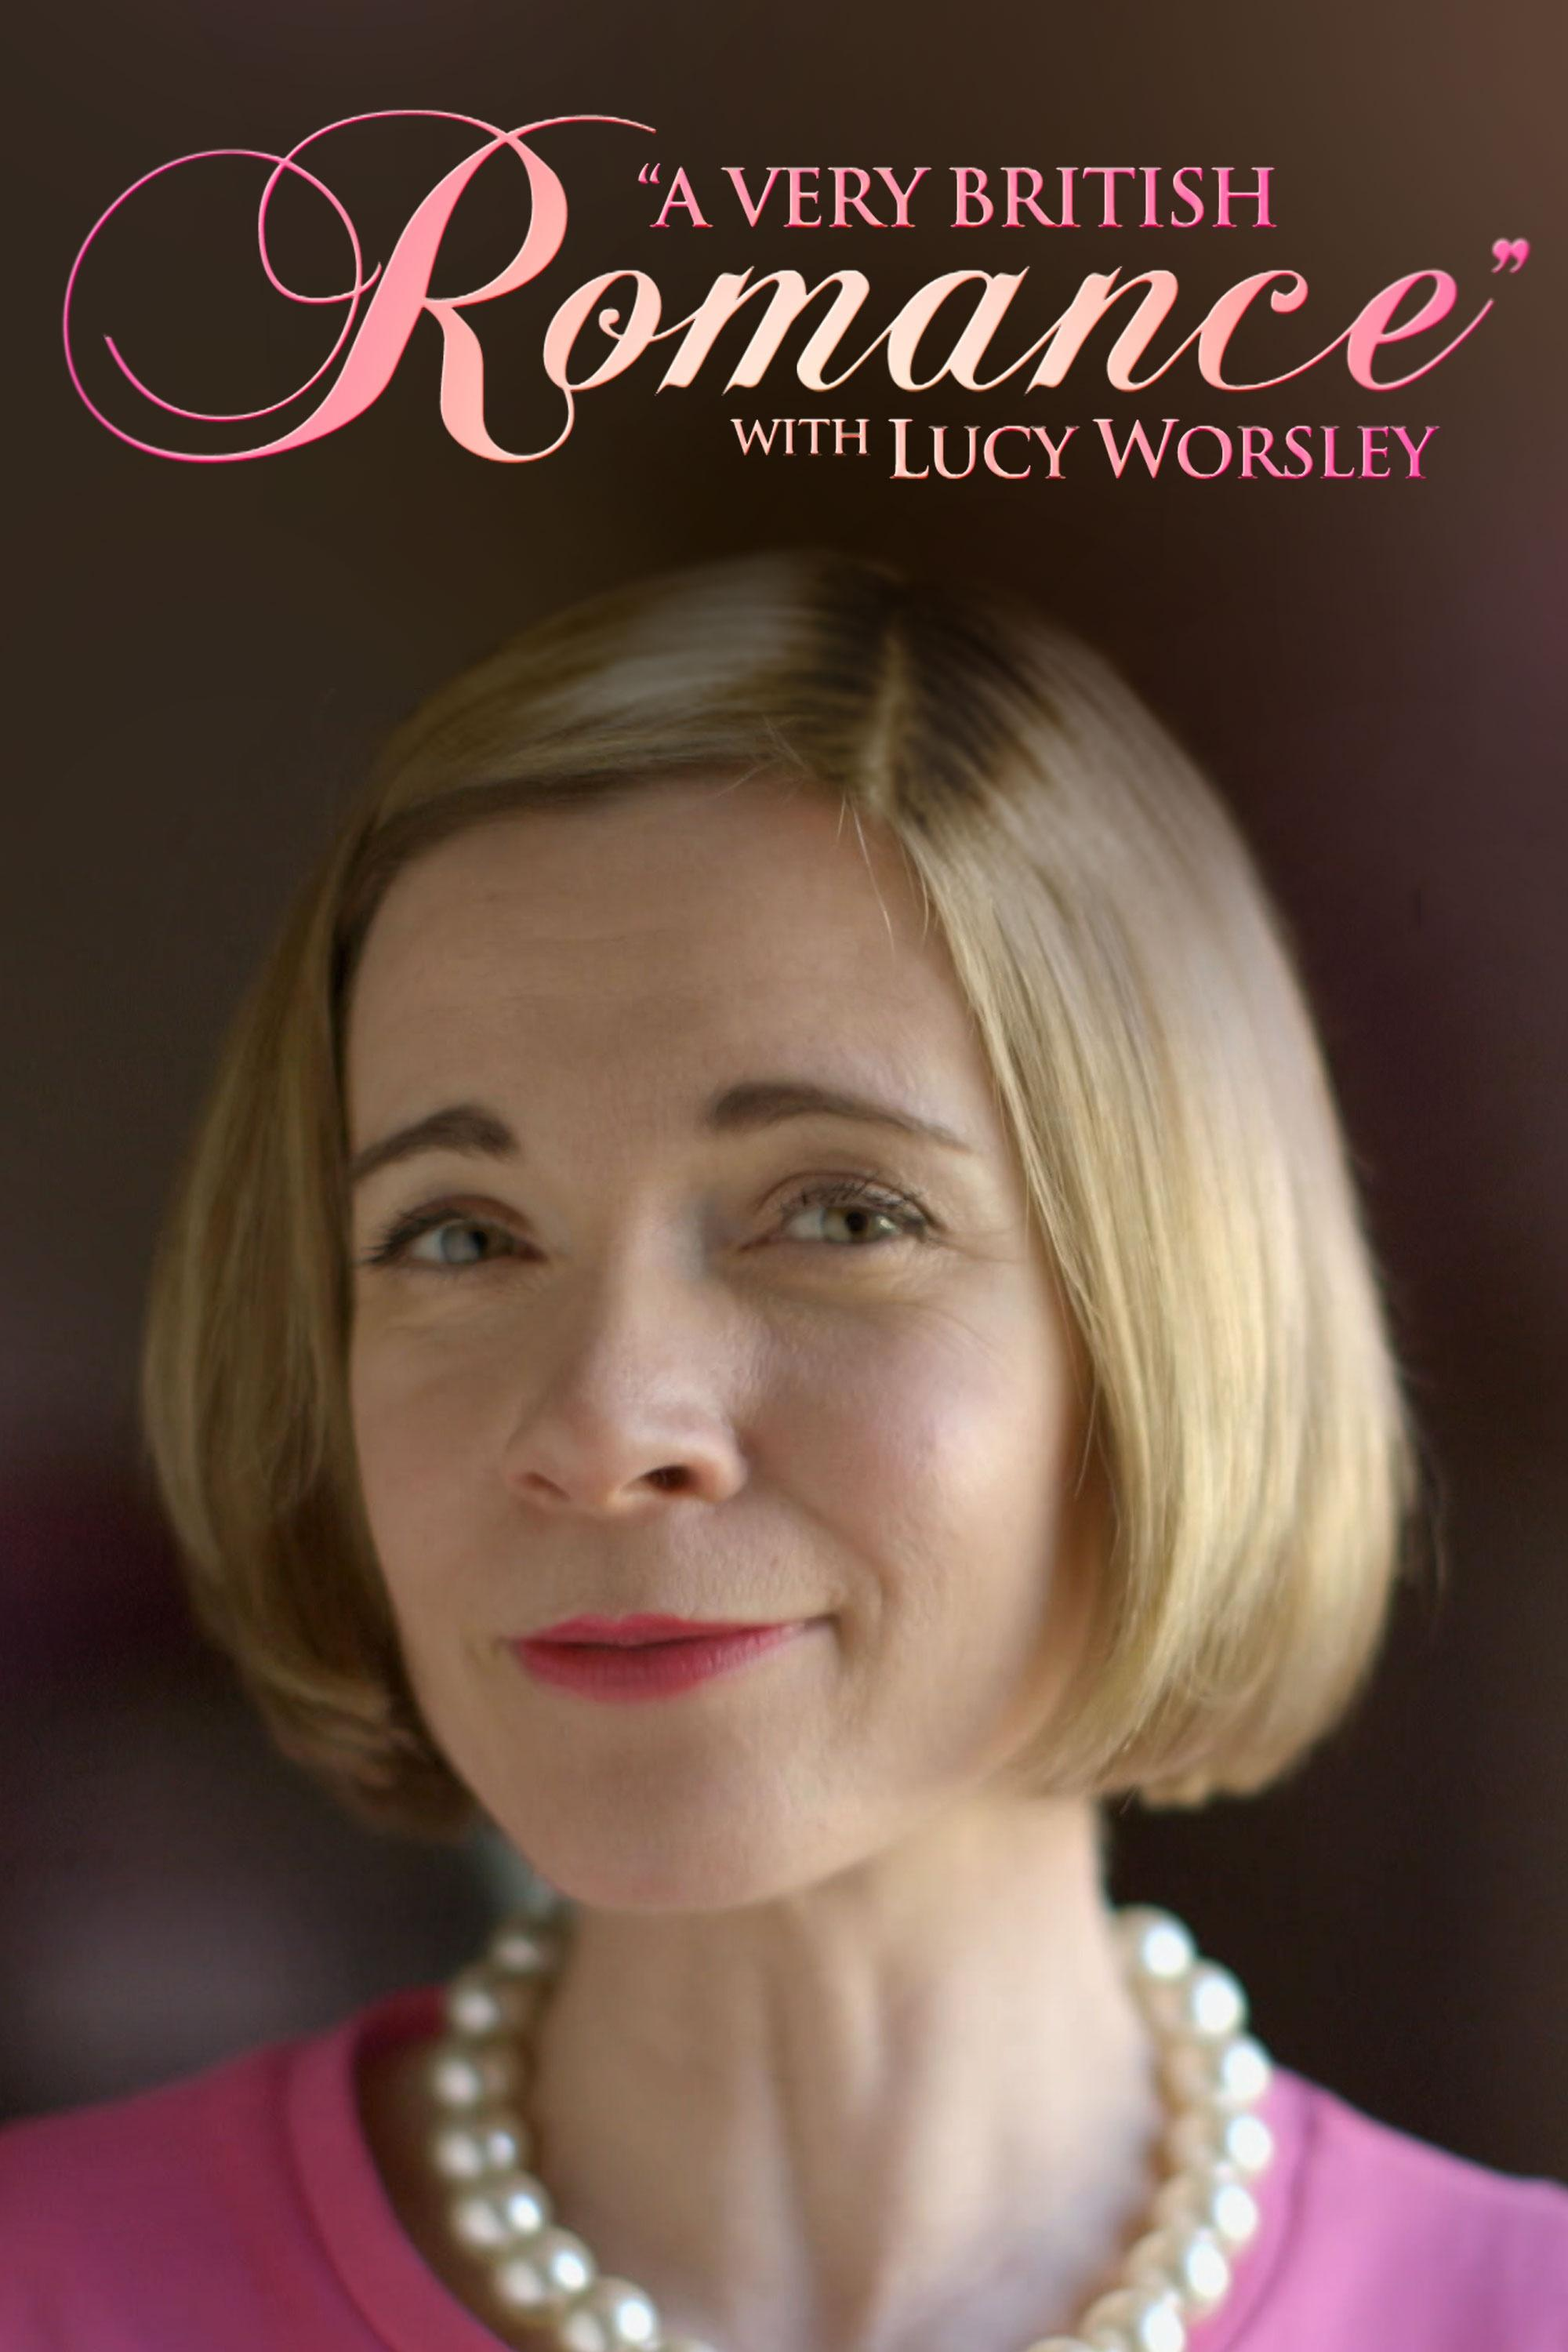 A Very British Romance with Lucy Worsley on FREECABLE TV